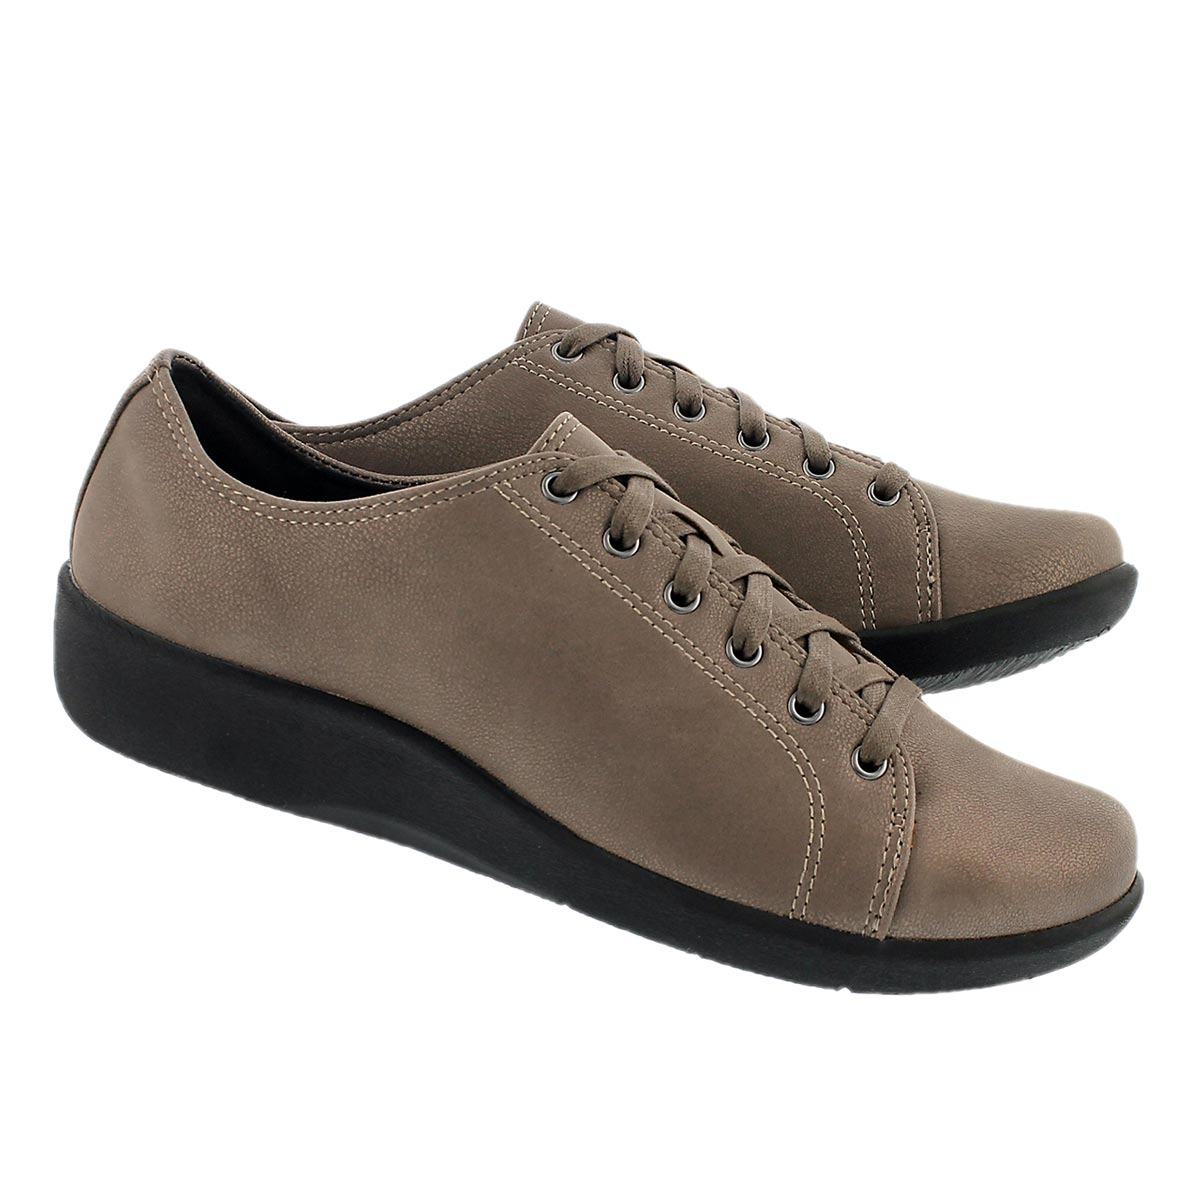 Lds Sillian Glory slv laceup casual shoe